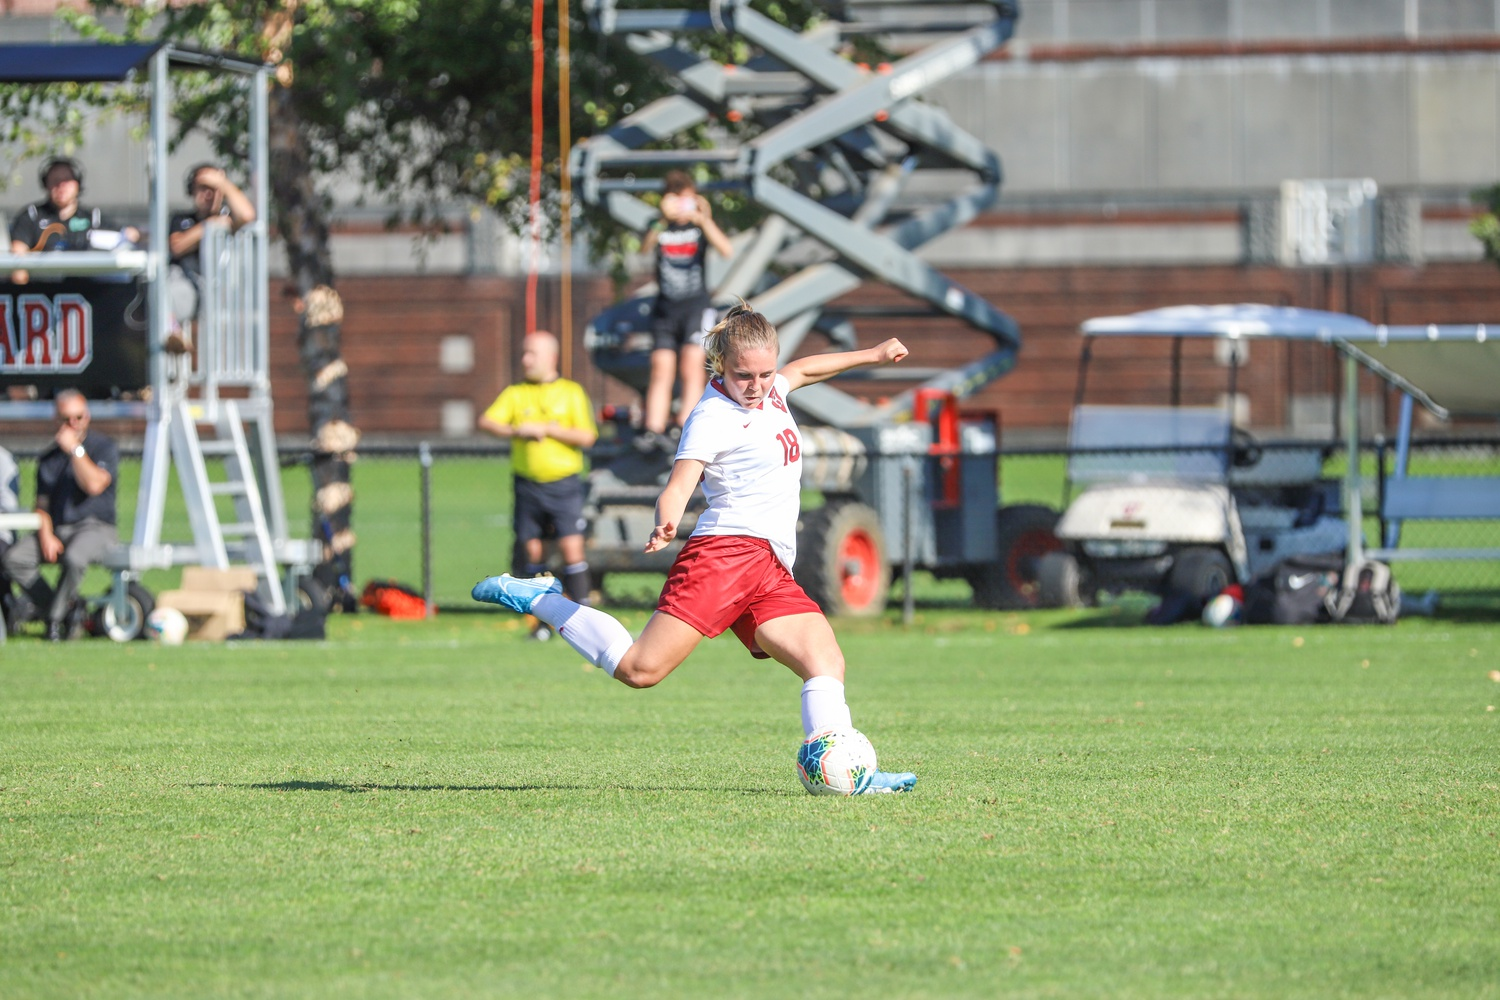 Lara Schenk, a key contributor to the 2021 Crimson squad, steps into a strike during the 2019 campaign, the end of which was the last time on the field for Harvard before last Friday.